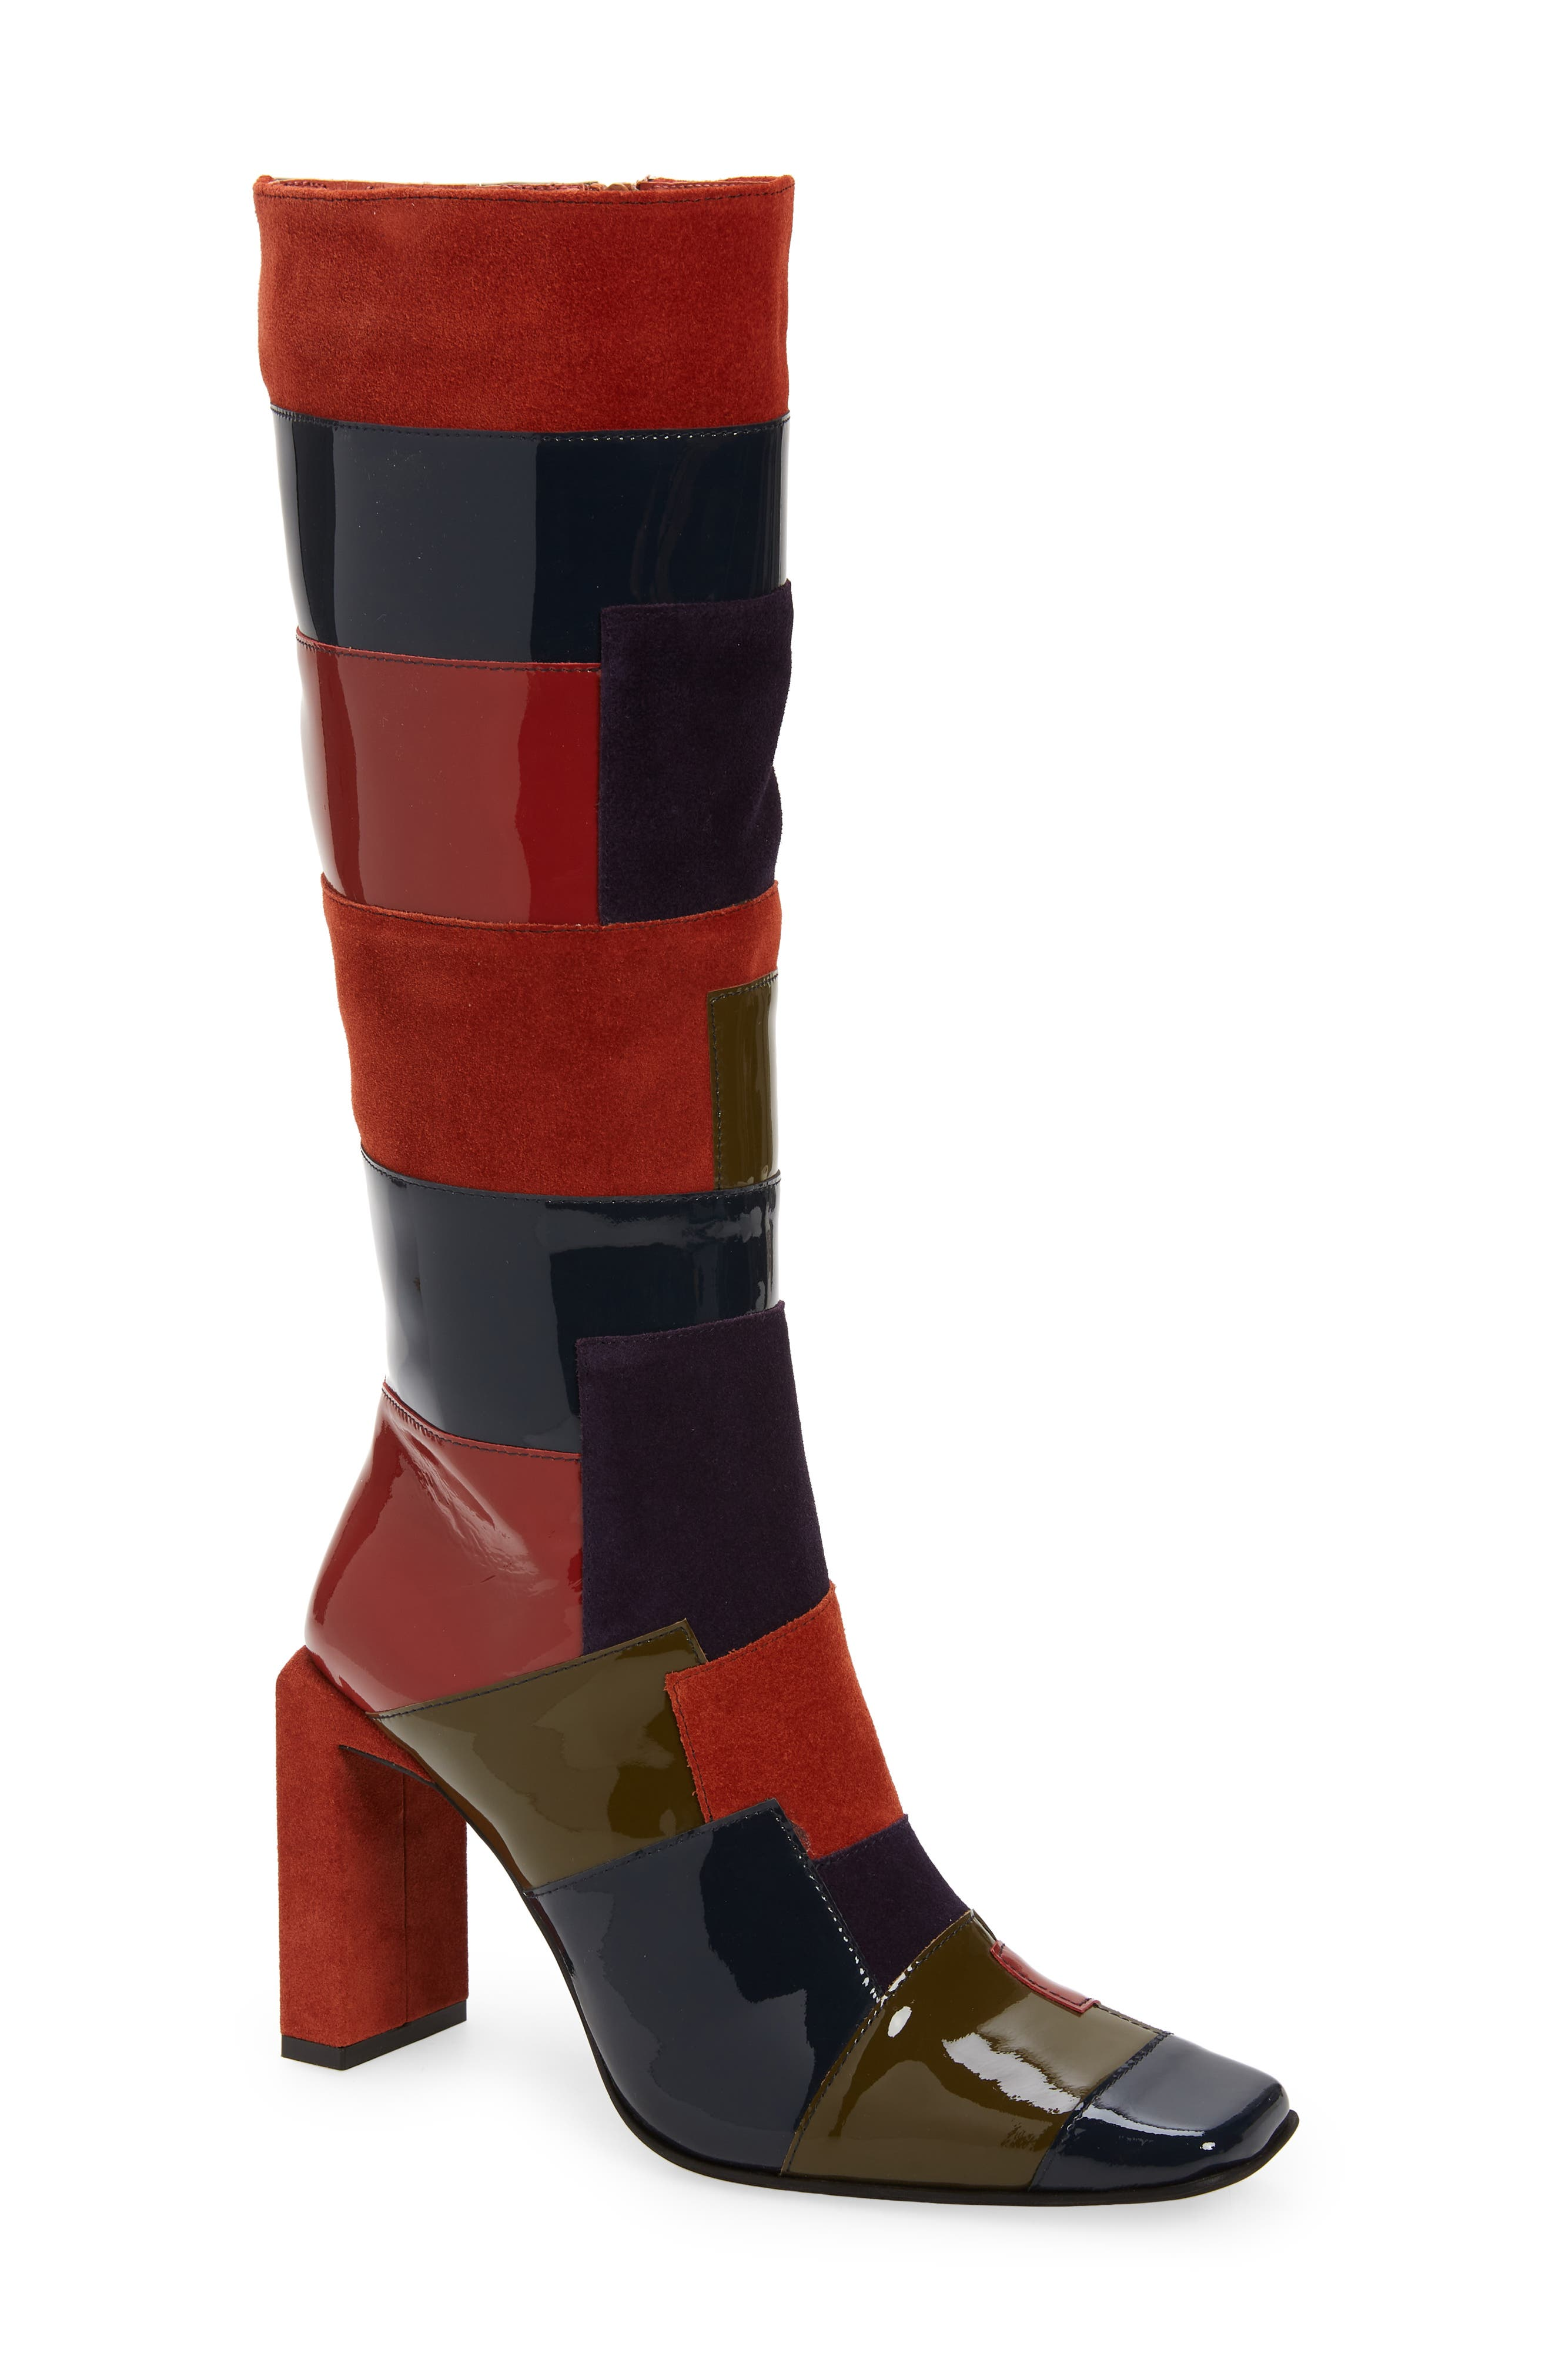 70s Clothes | Hippie Clothes & Outfits Jeffrey Campbell Lightspeed Patchwork Boot Size 10 in Khaki Rust Multi at Nordstrom $314.95 AT vintagedancer.com